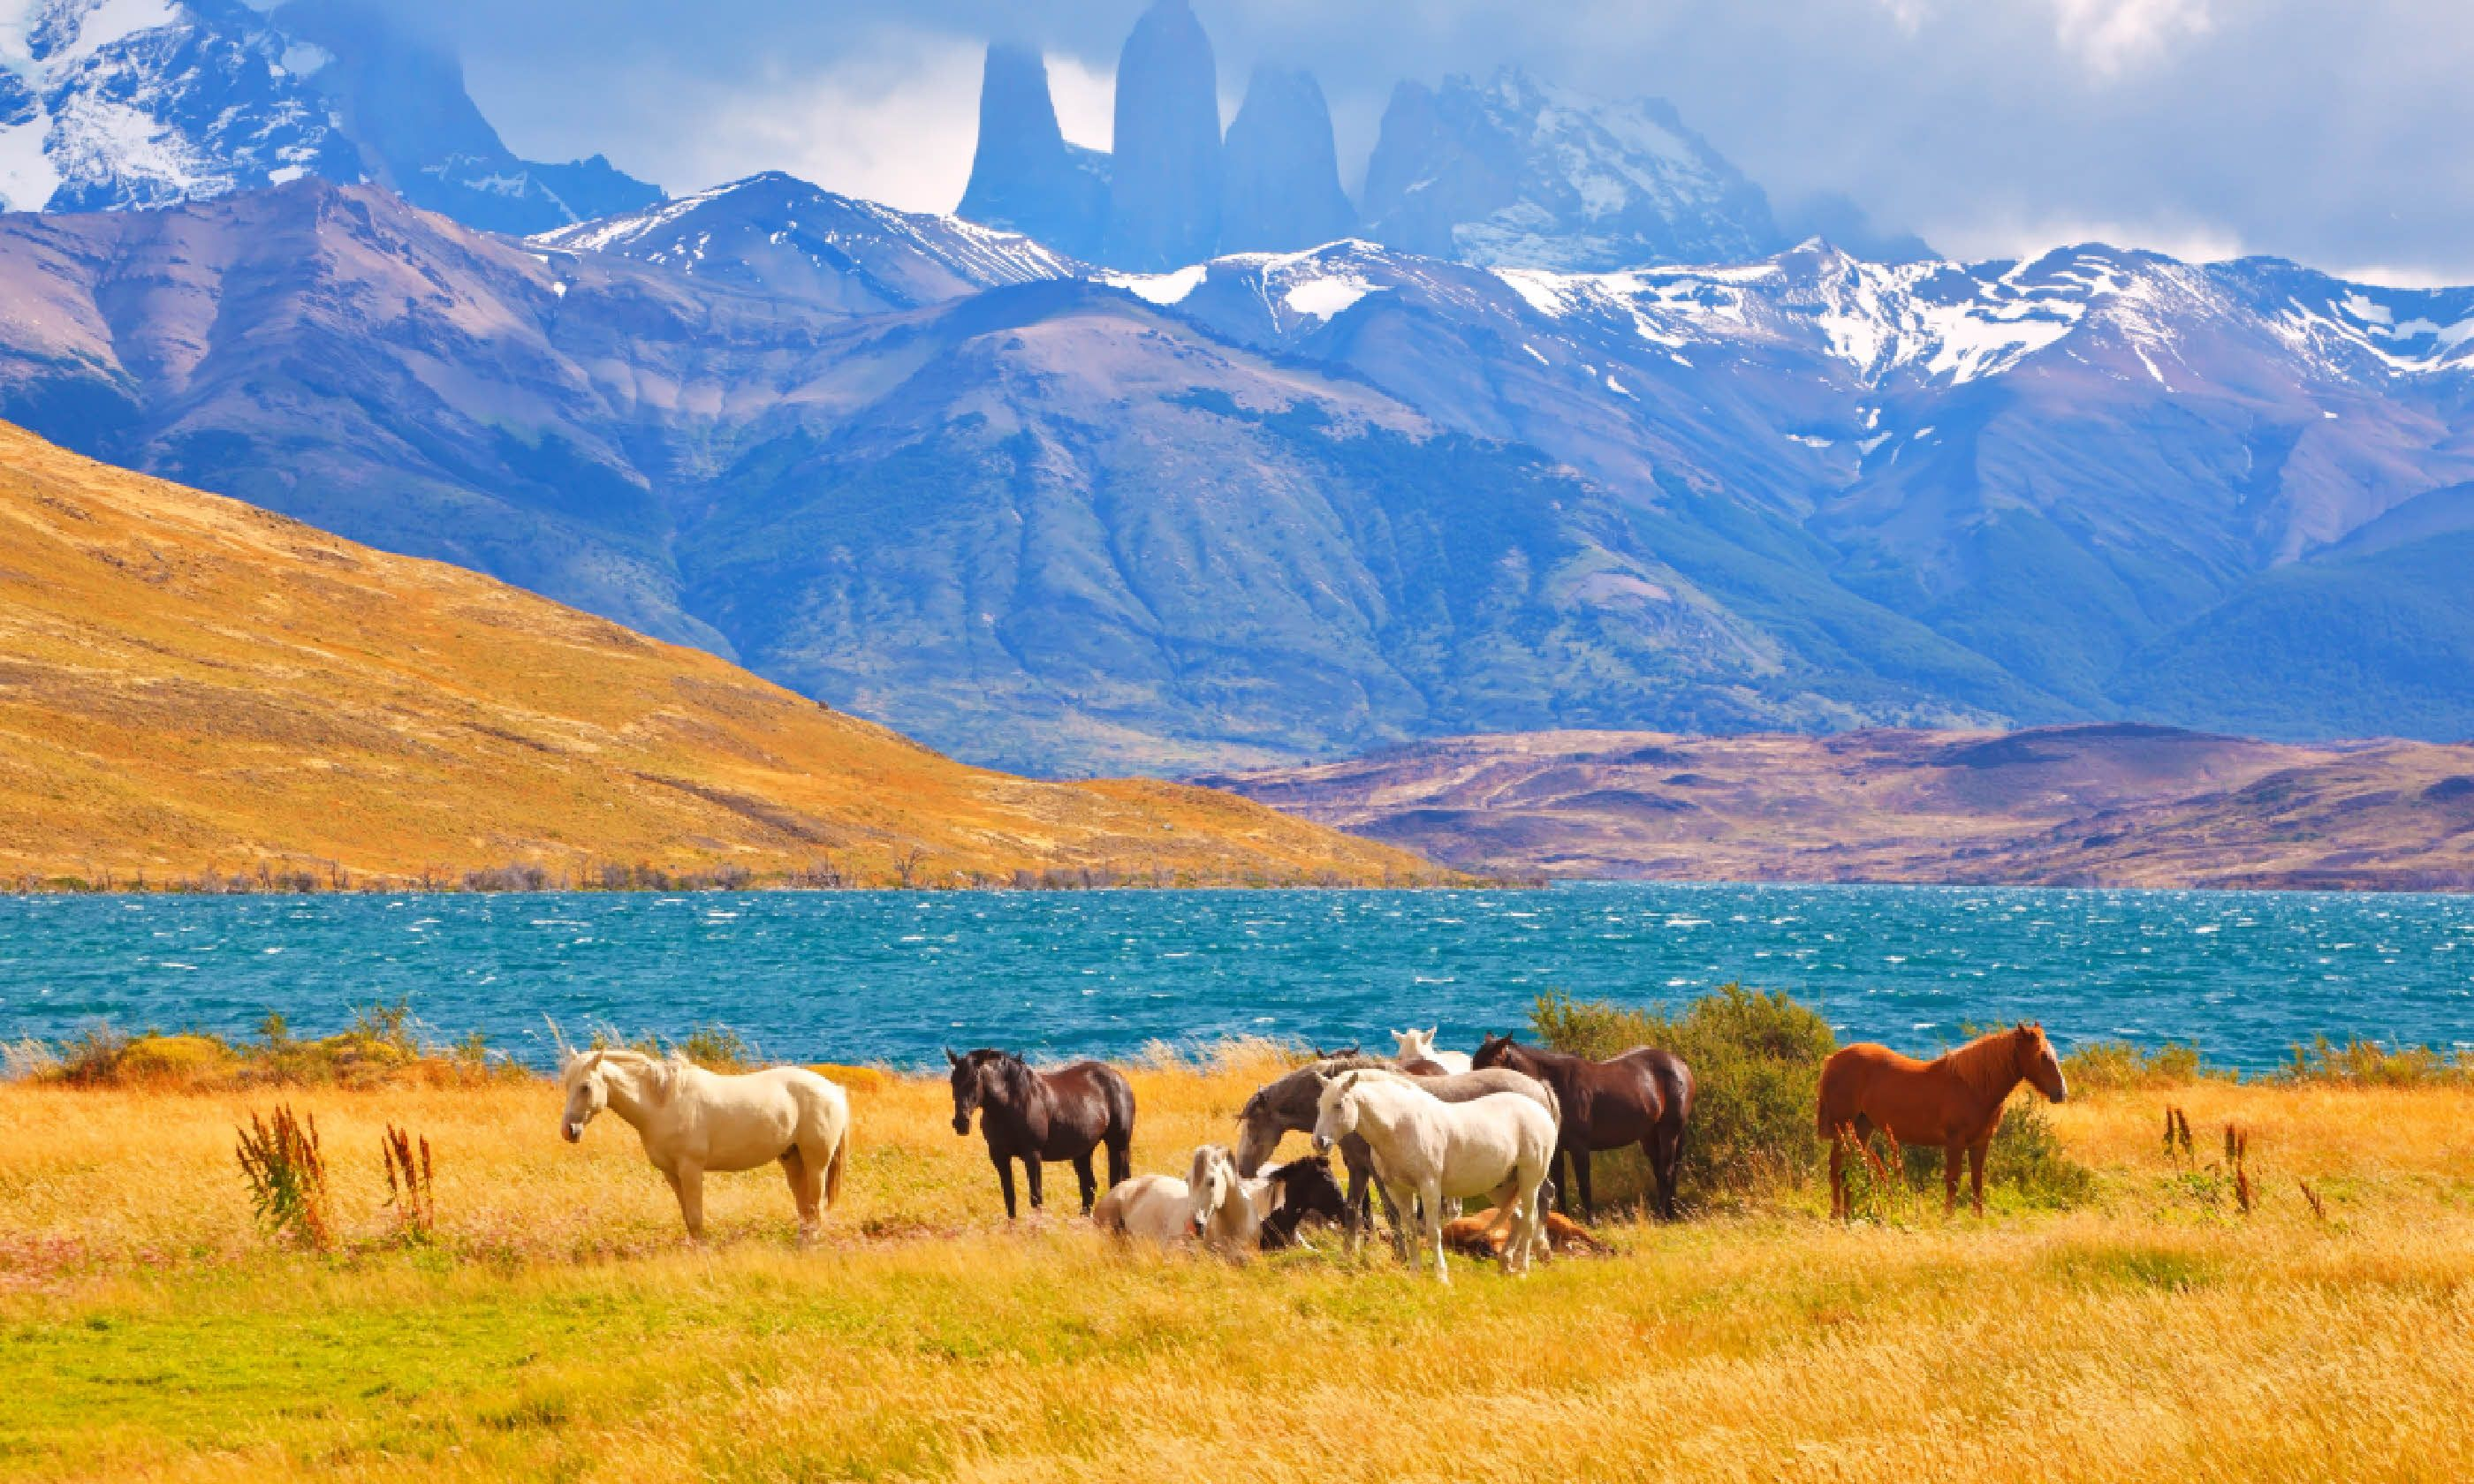 Horses grazing in meadow in Torres del Paine National Park (Shutterstock)